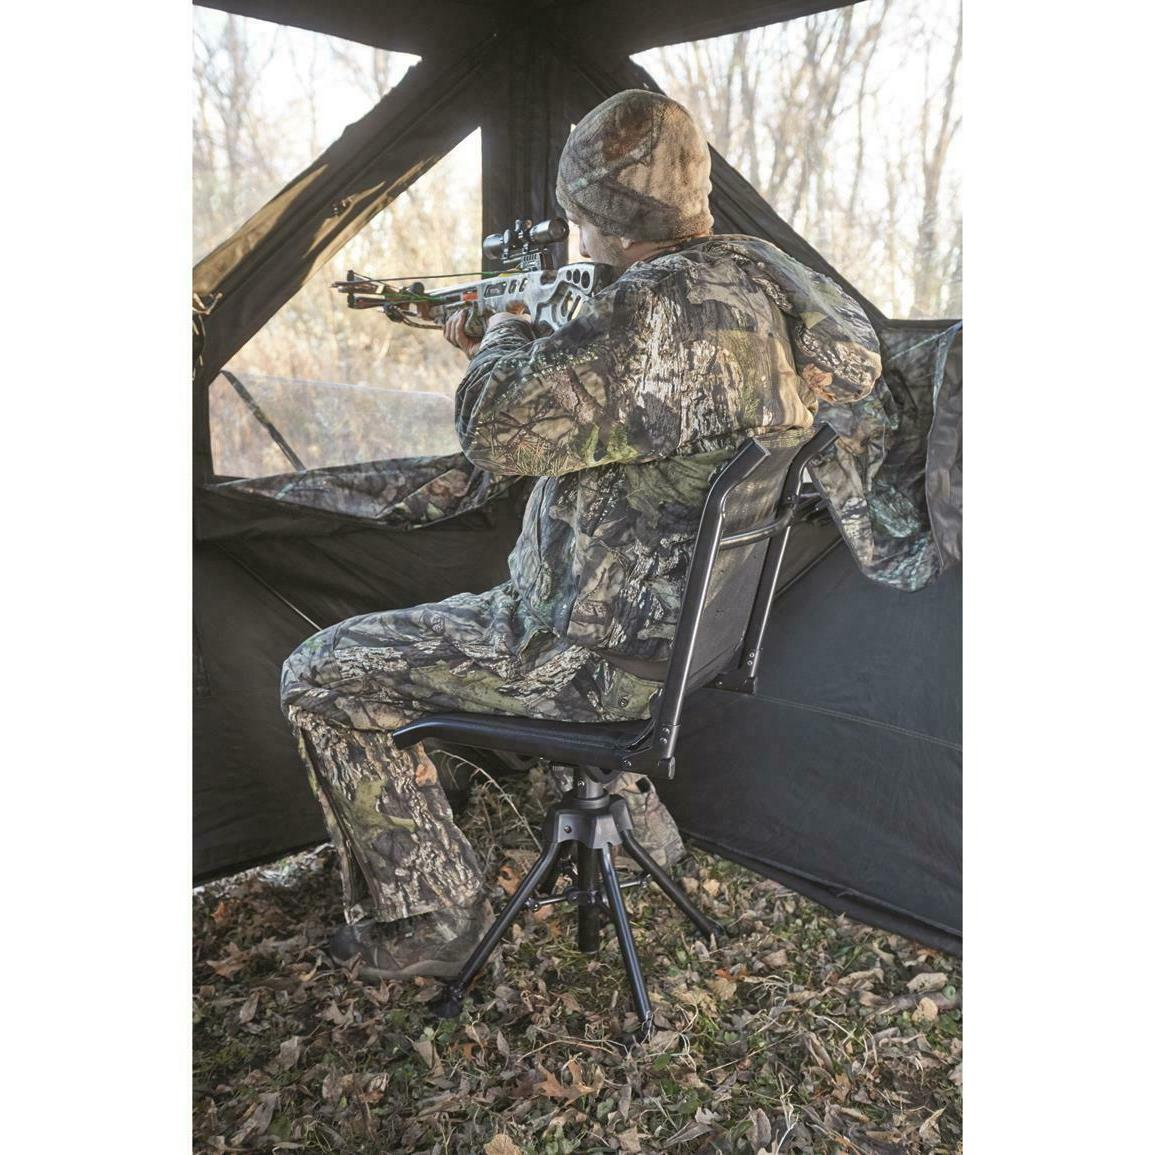 Hunting Blind Armrests Deer Hunting Camping